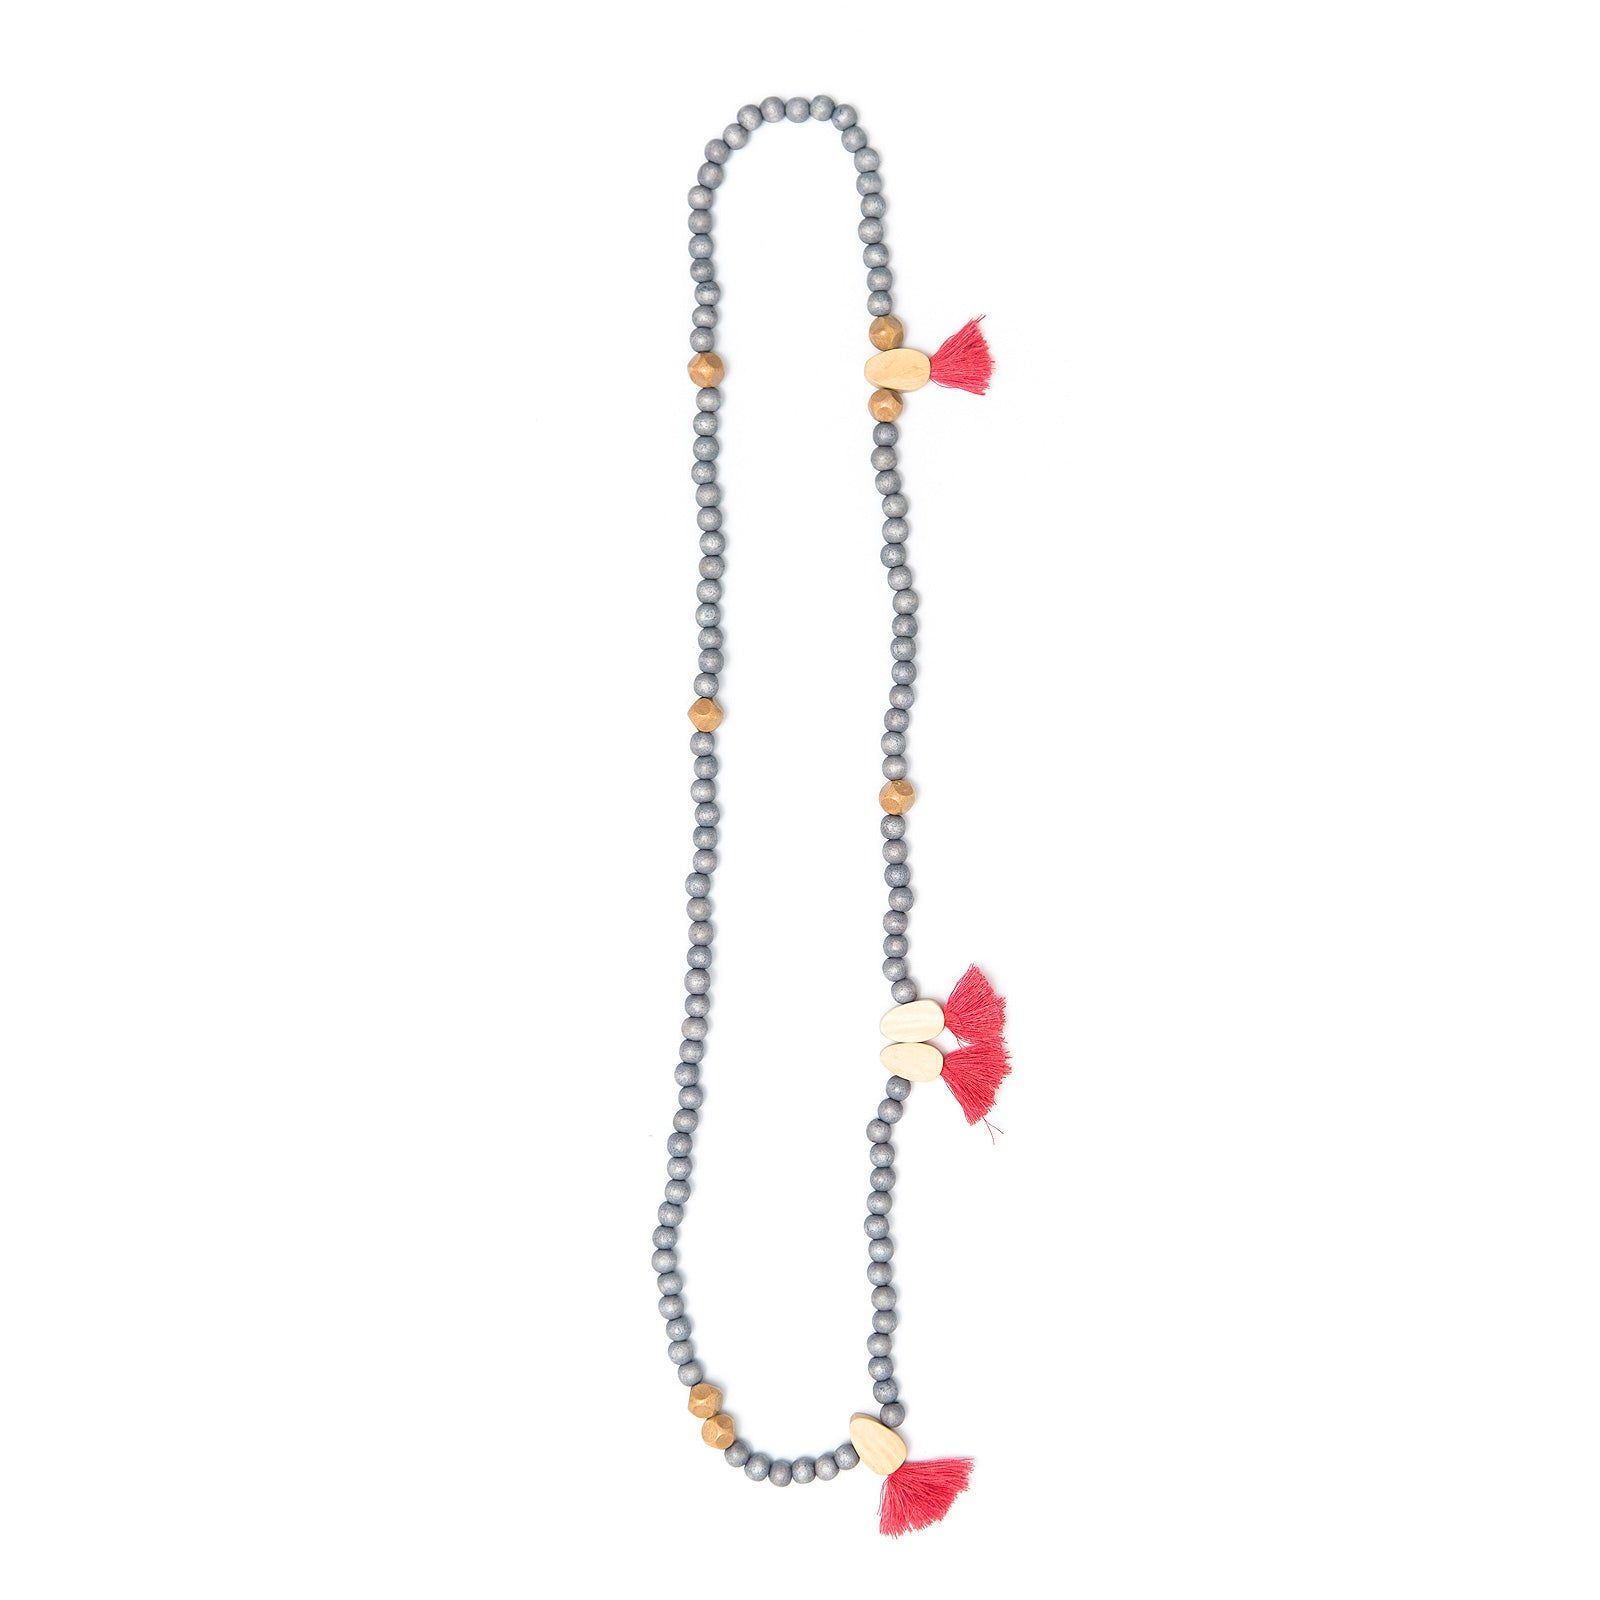 Tiny Egg Cluster bead and tassel necklace